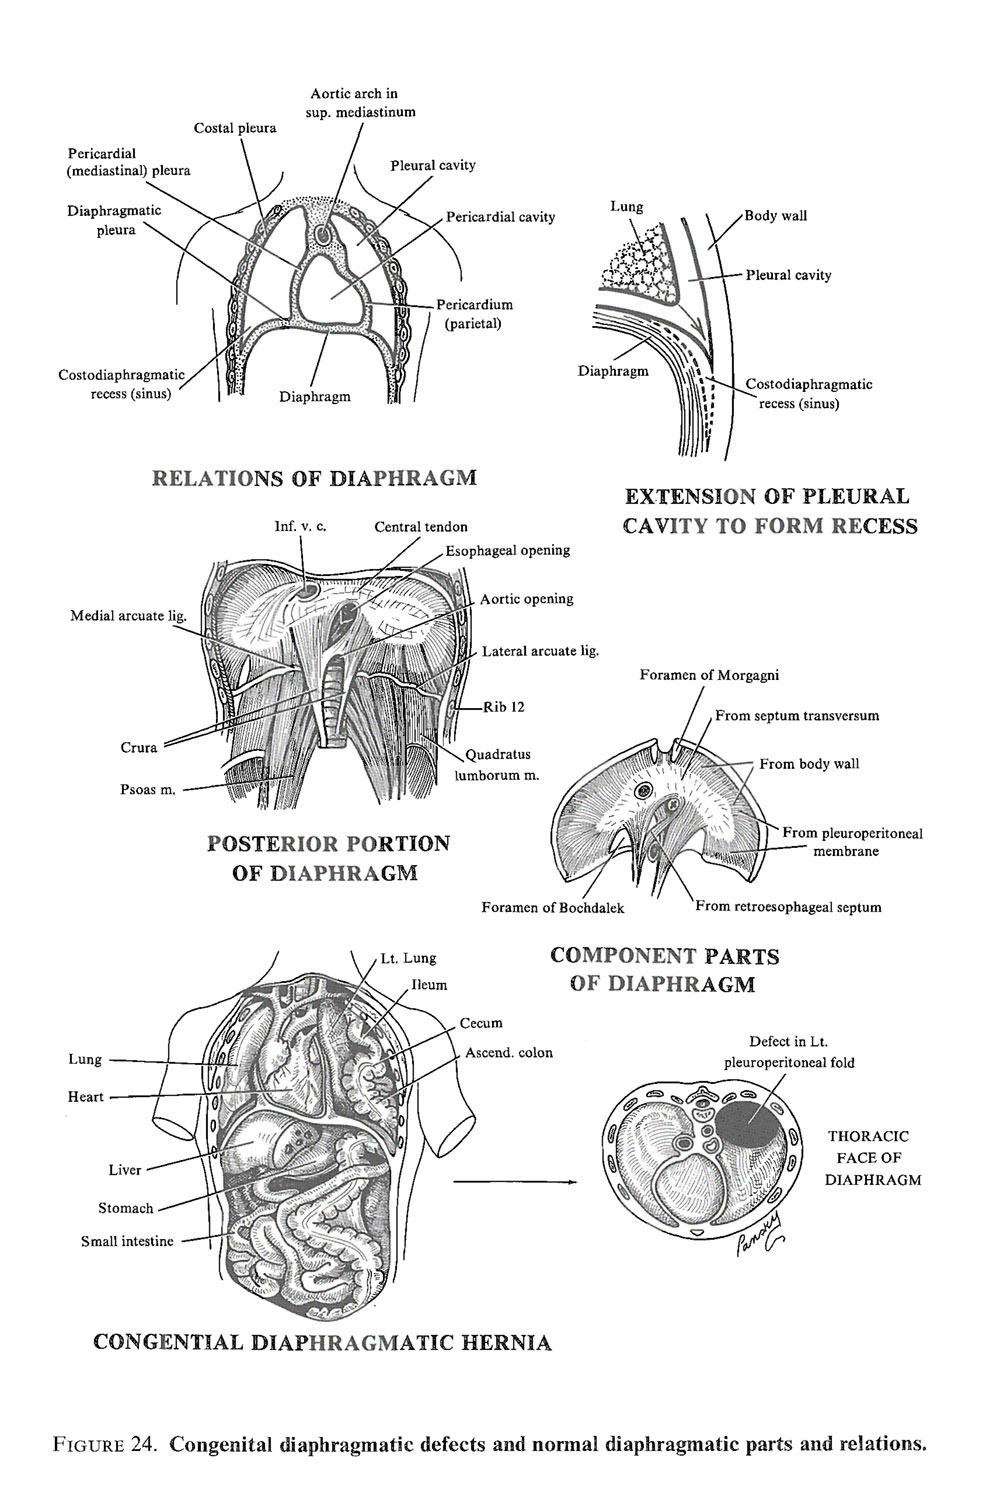 development of the diaphragm: image #3